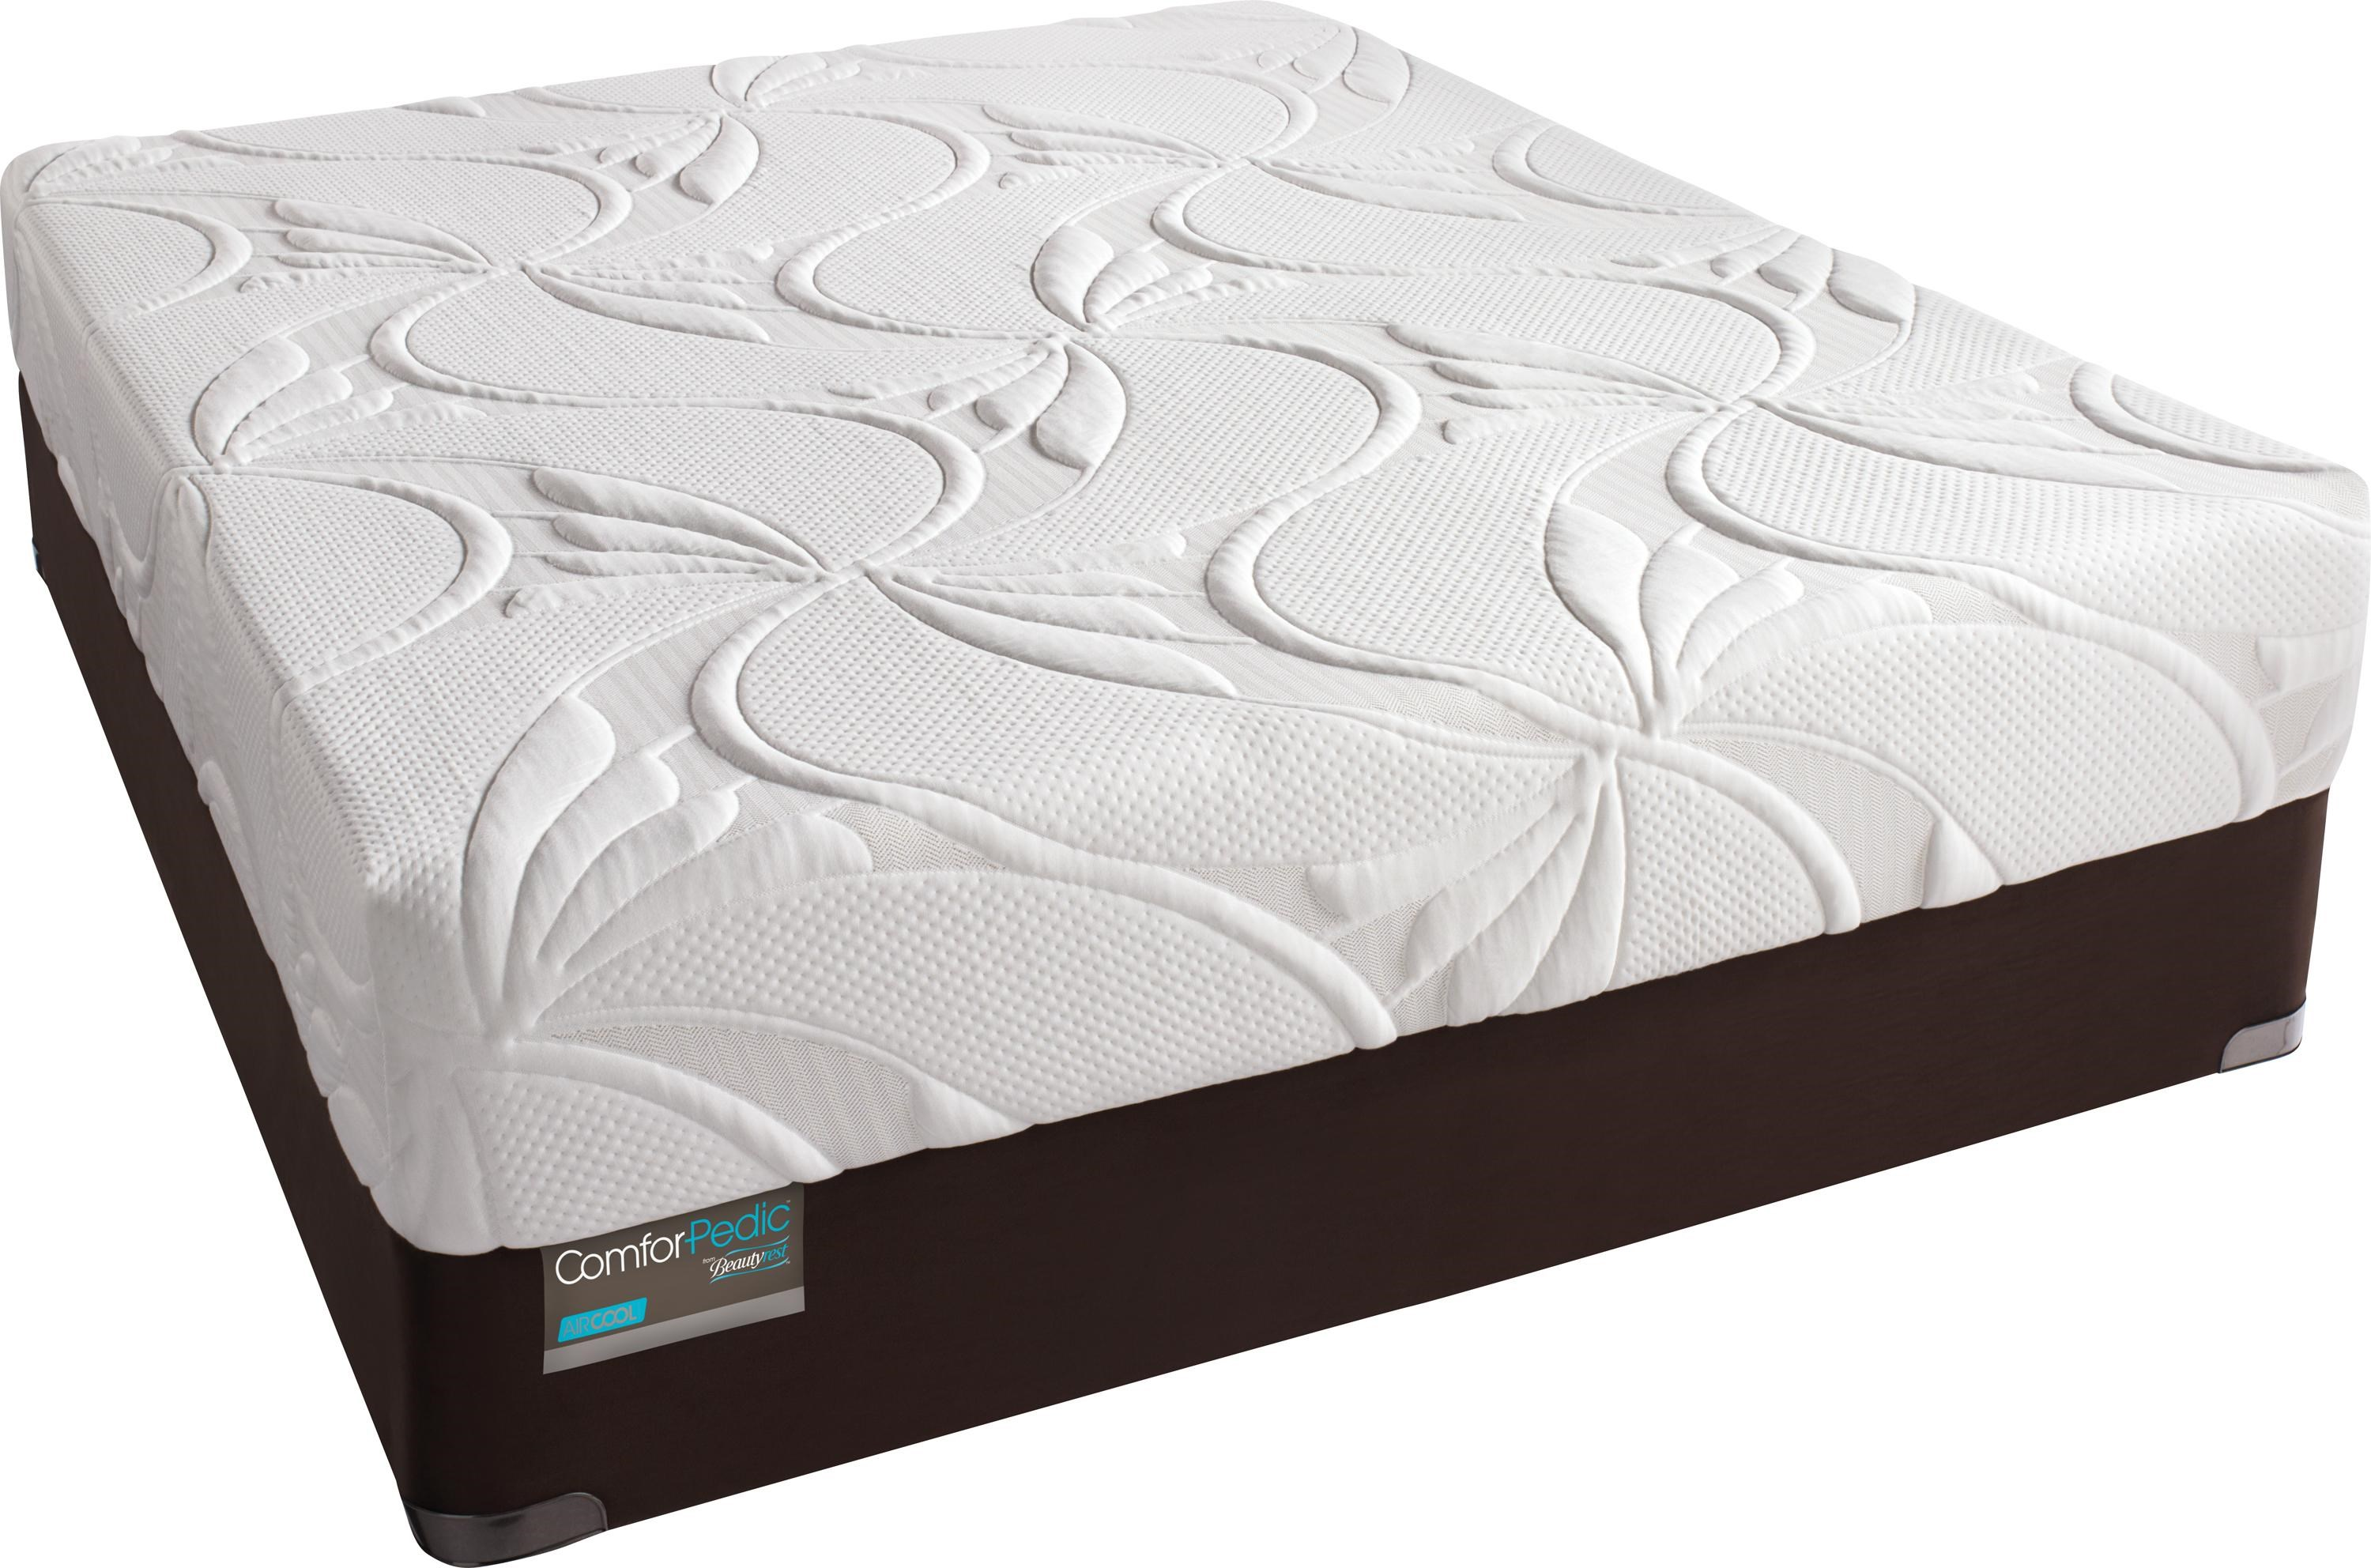 Simmons forPedic Advanced Rest Queen Luxury Firm Memory